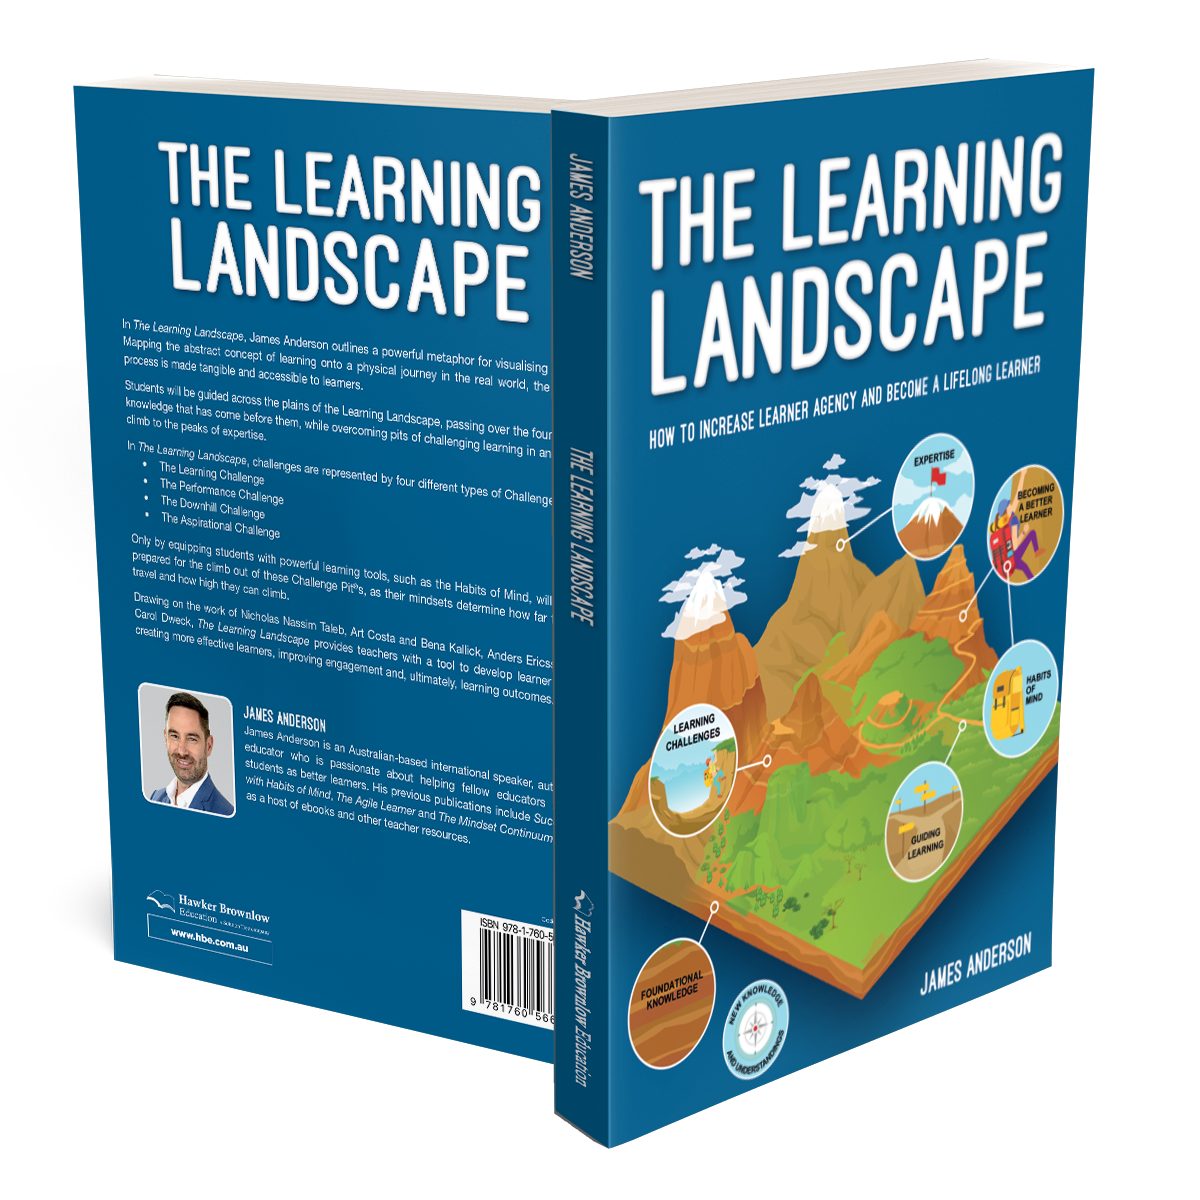 The Learning Landscape James Anderson